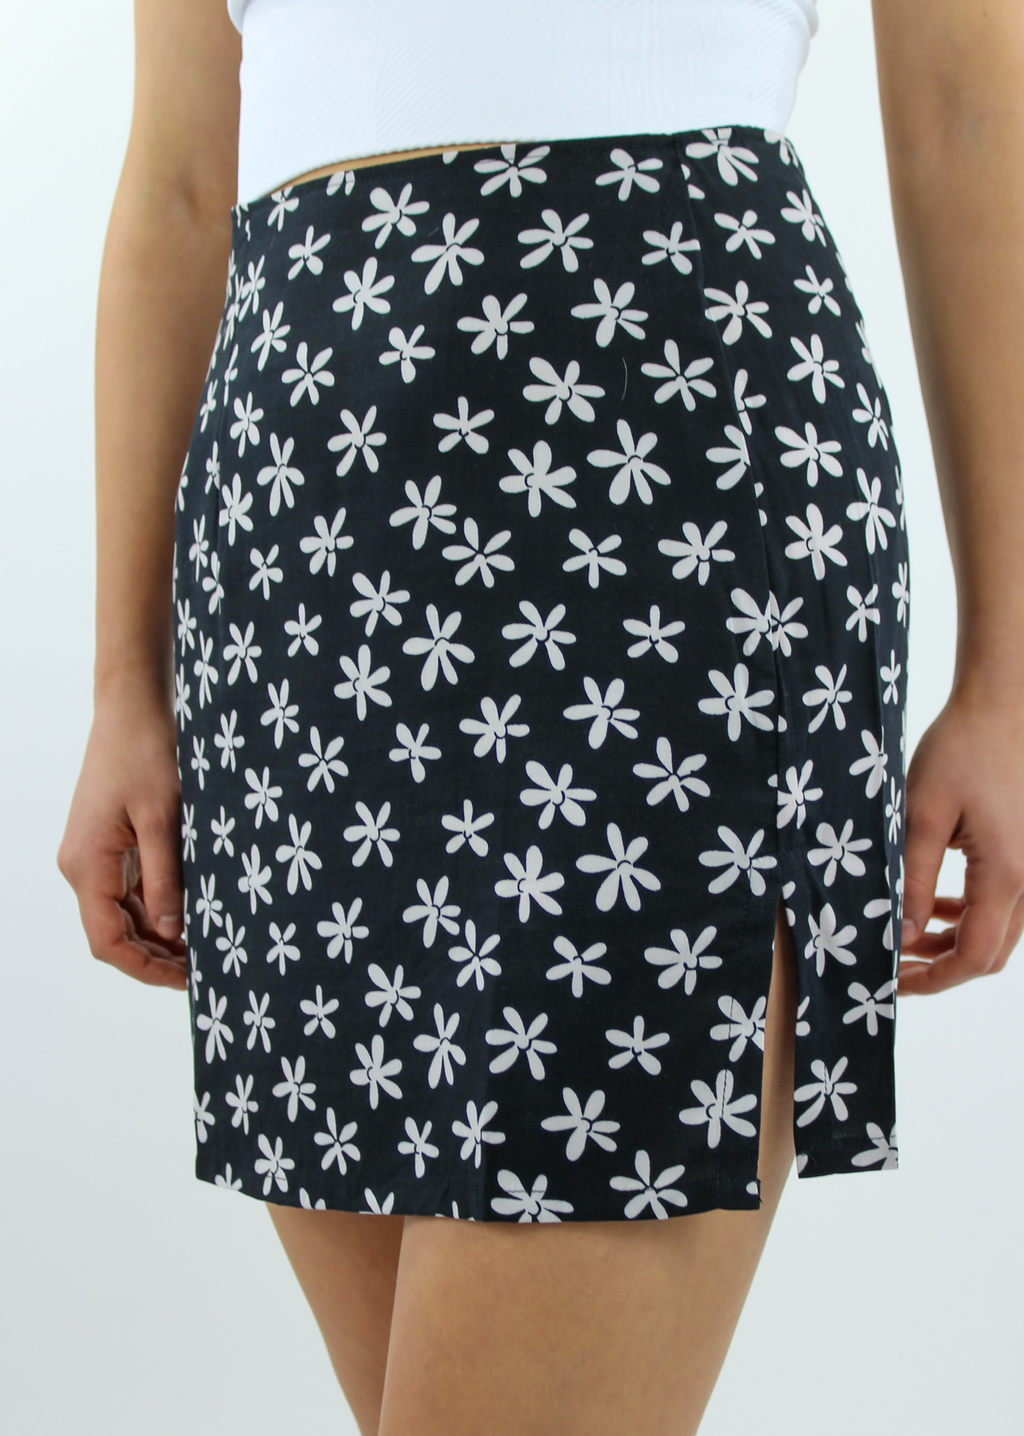 Crazy Daisy Lady Mini Skirt ★ Black & White - Rock N Rags